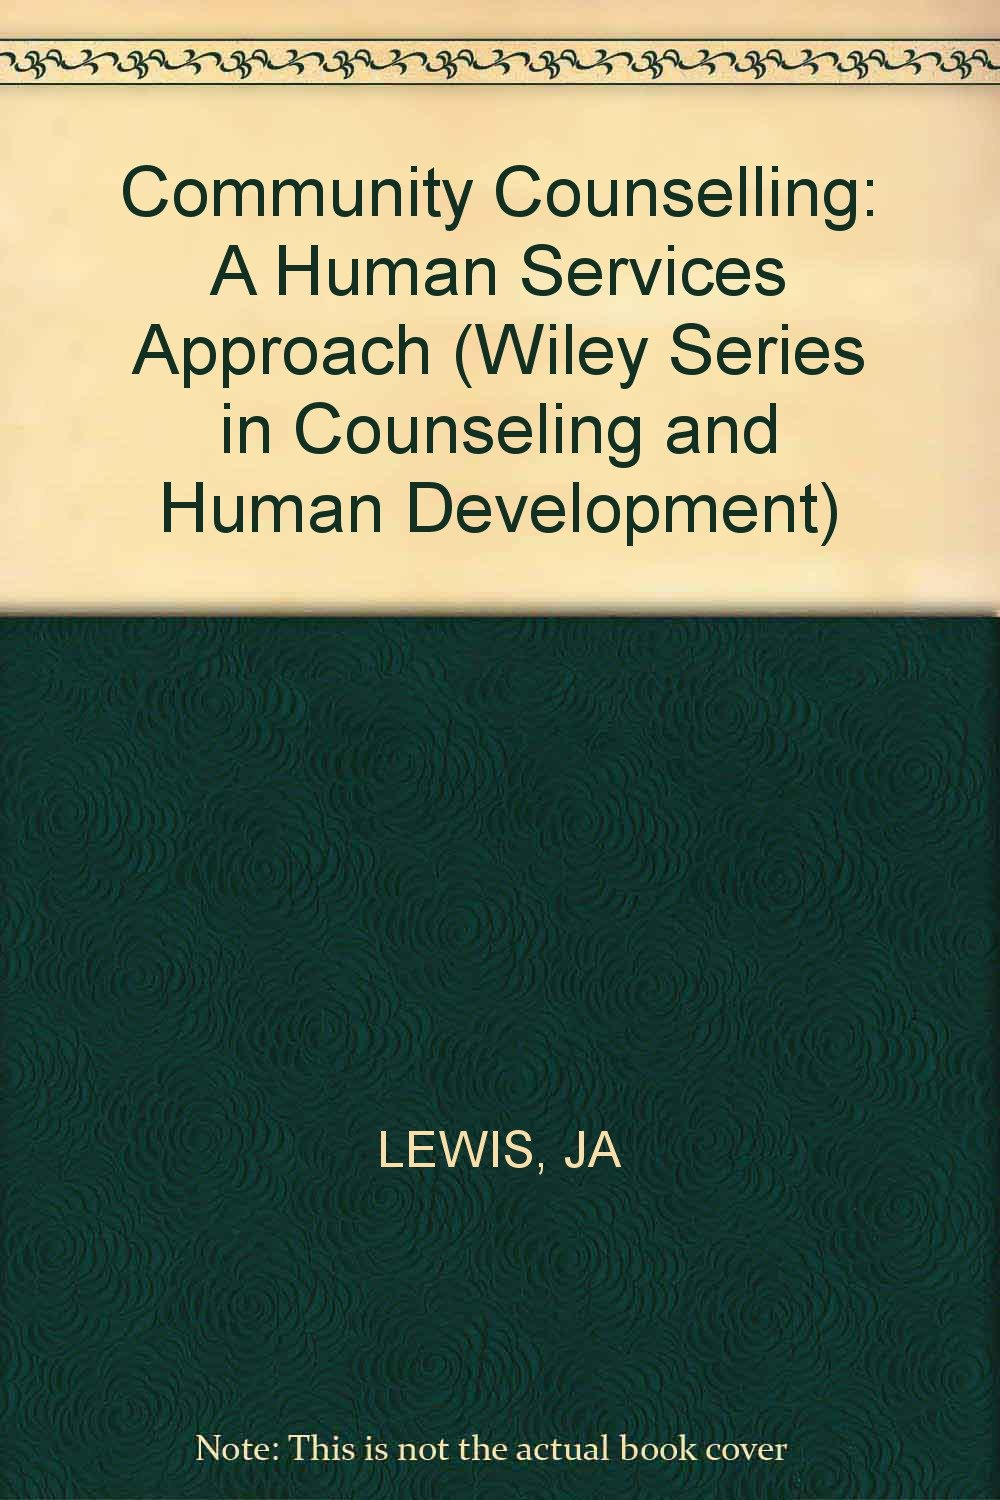 Community Counselling: A Human Services Approach (Wiley series in counseling  & human development): Judith A. Lewis, Michael D. Lewis: 9780471532033: ...